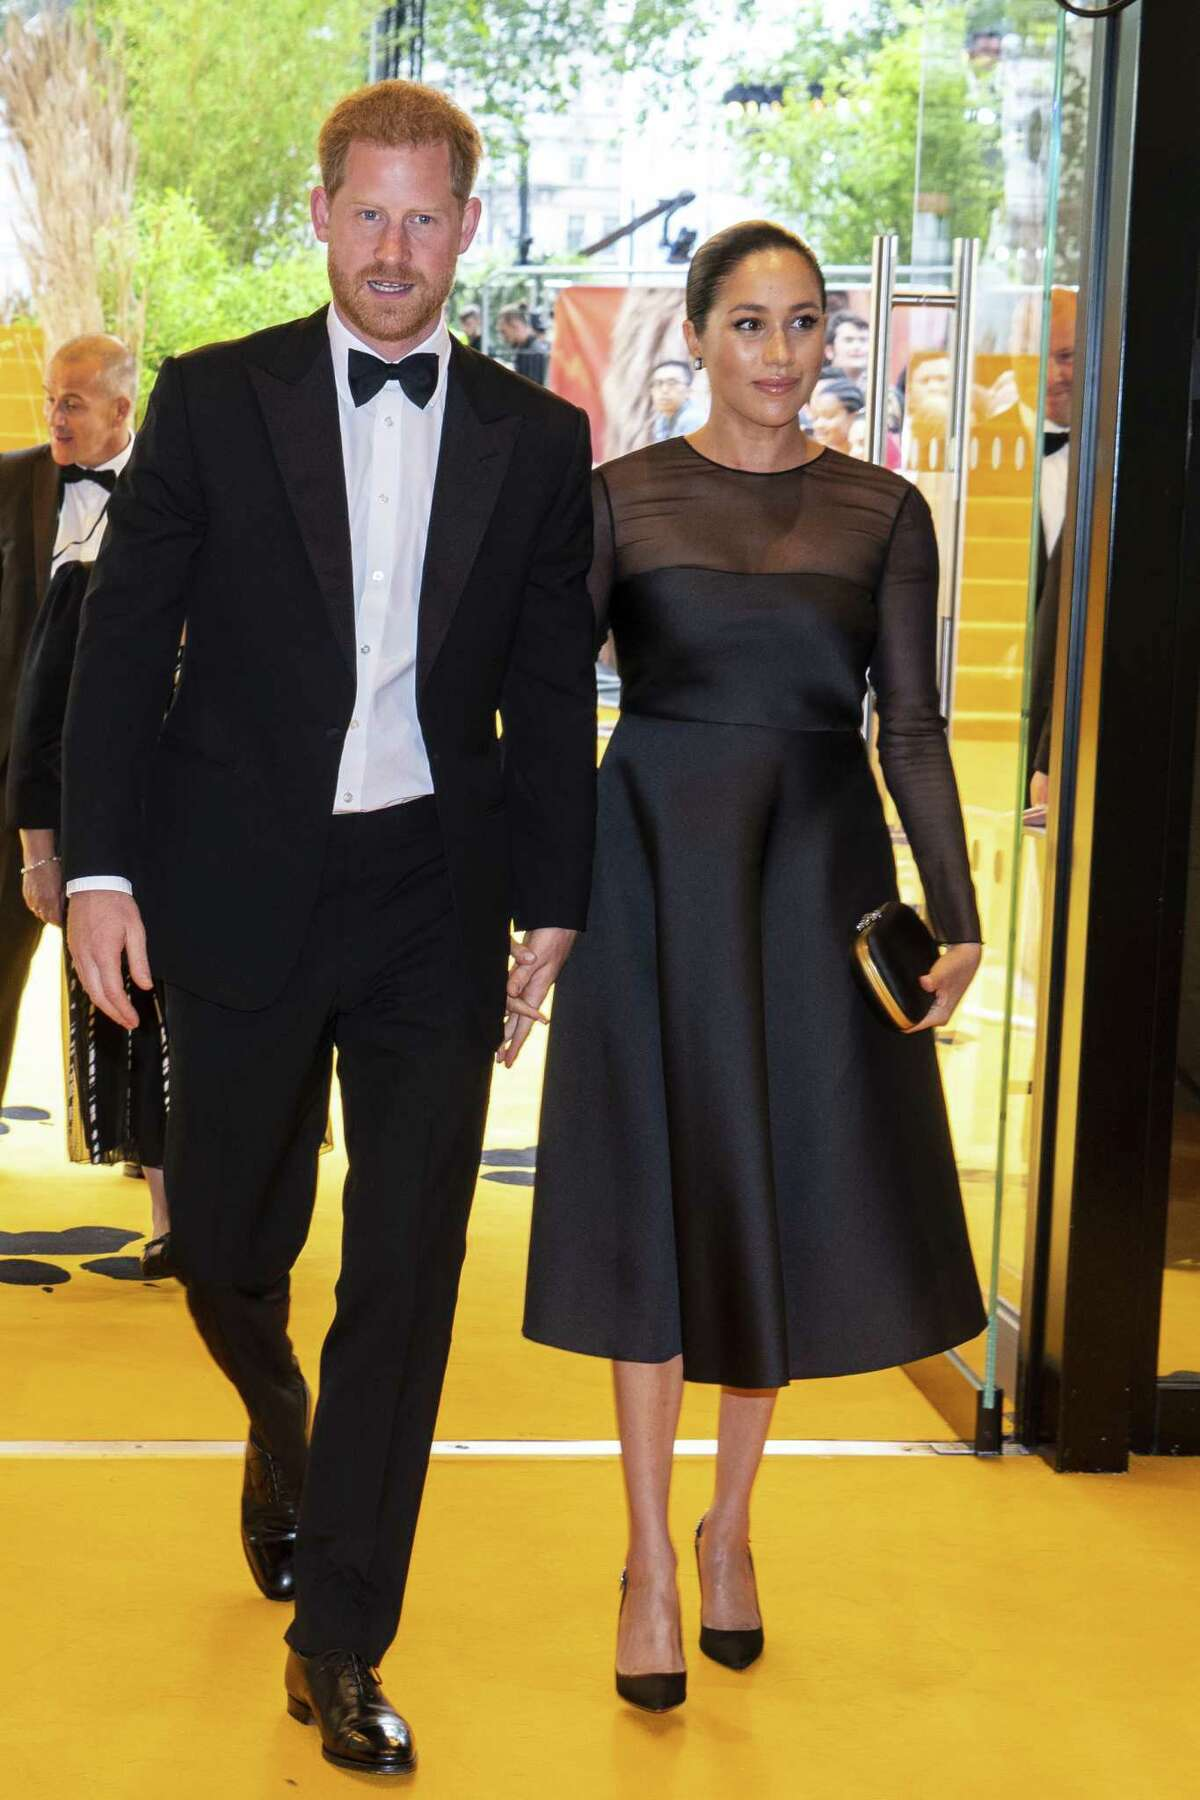 LONDON, ENGLAND - JULY 14: Prince Harry, Duke of Sussex and Meghan, Duchess of Sussex arrive to attend the European Premiere of Disney's